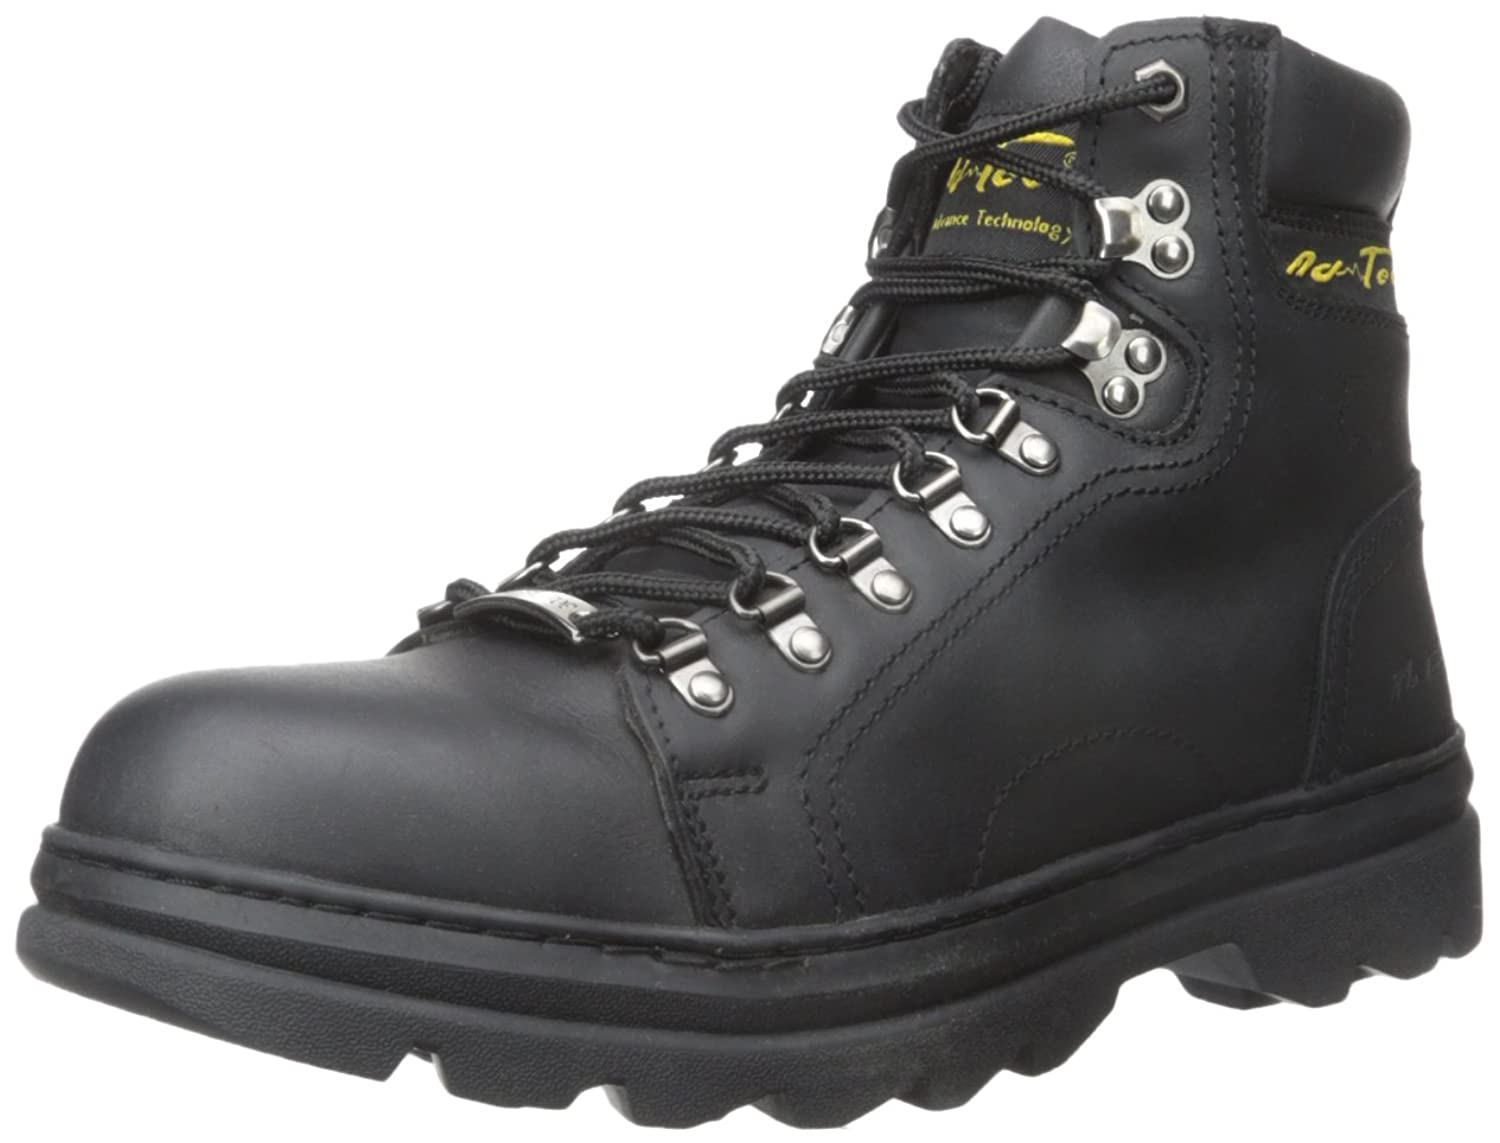 AdTec Men's 6 Inch Steel Toe Work Hiker, Black, 8.5 W US B003RQCHMI